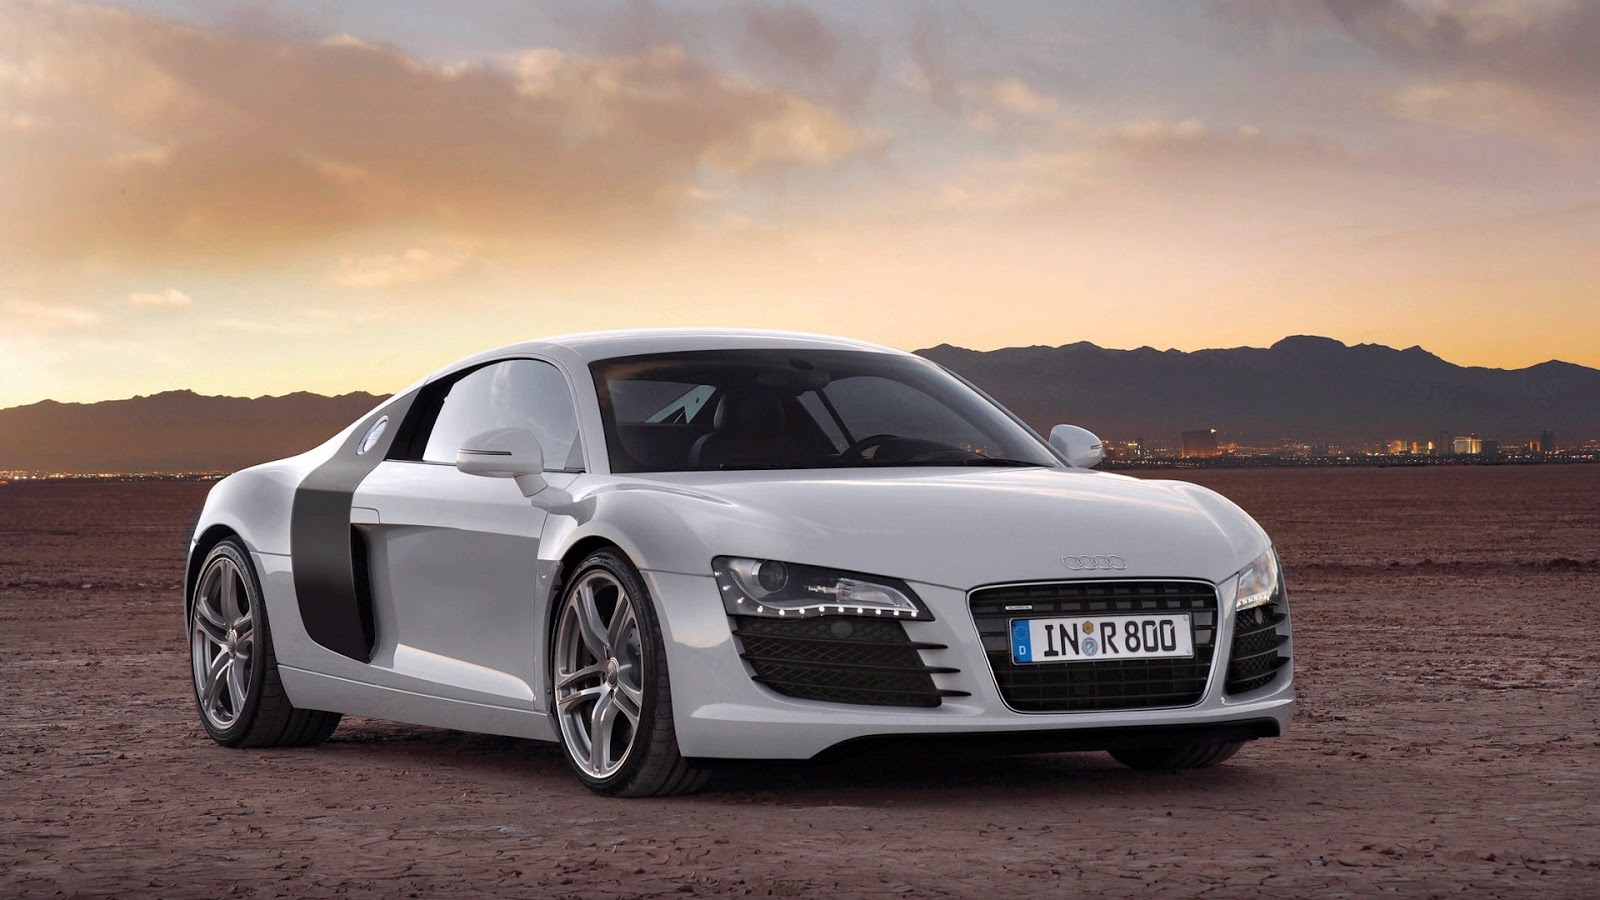 Audi R8 HD Wallpapers Download 1080p |Ultra HD Wallpapers ...